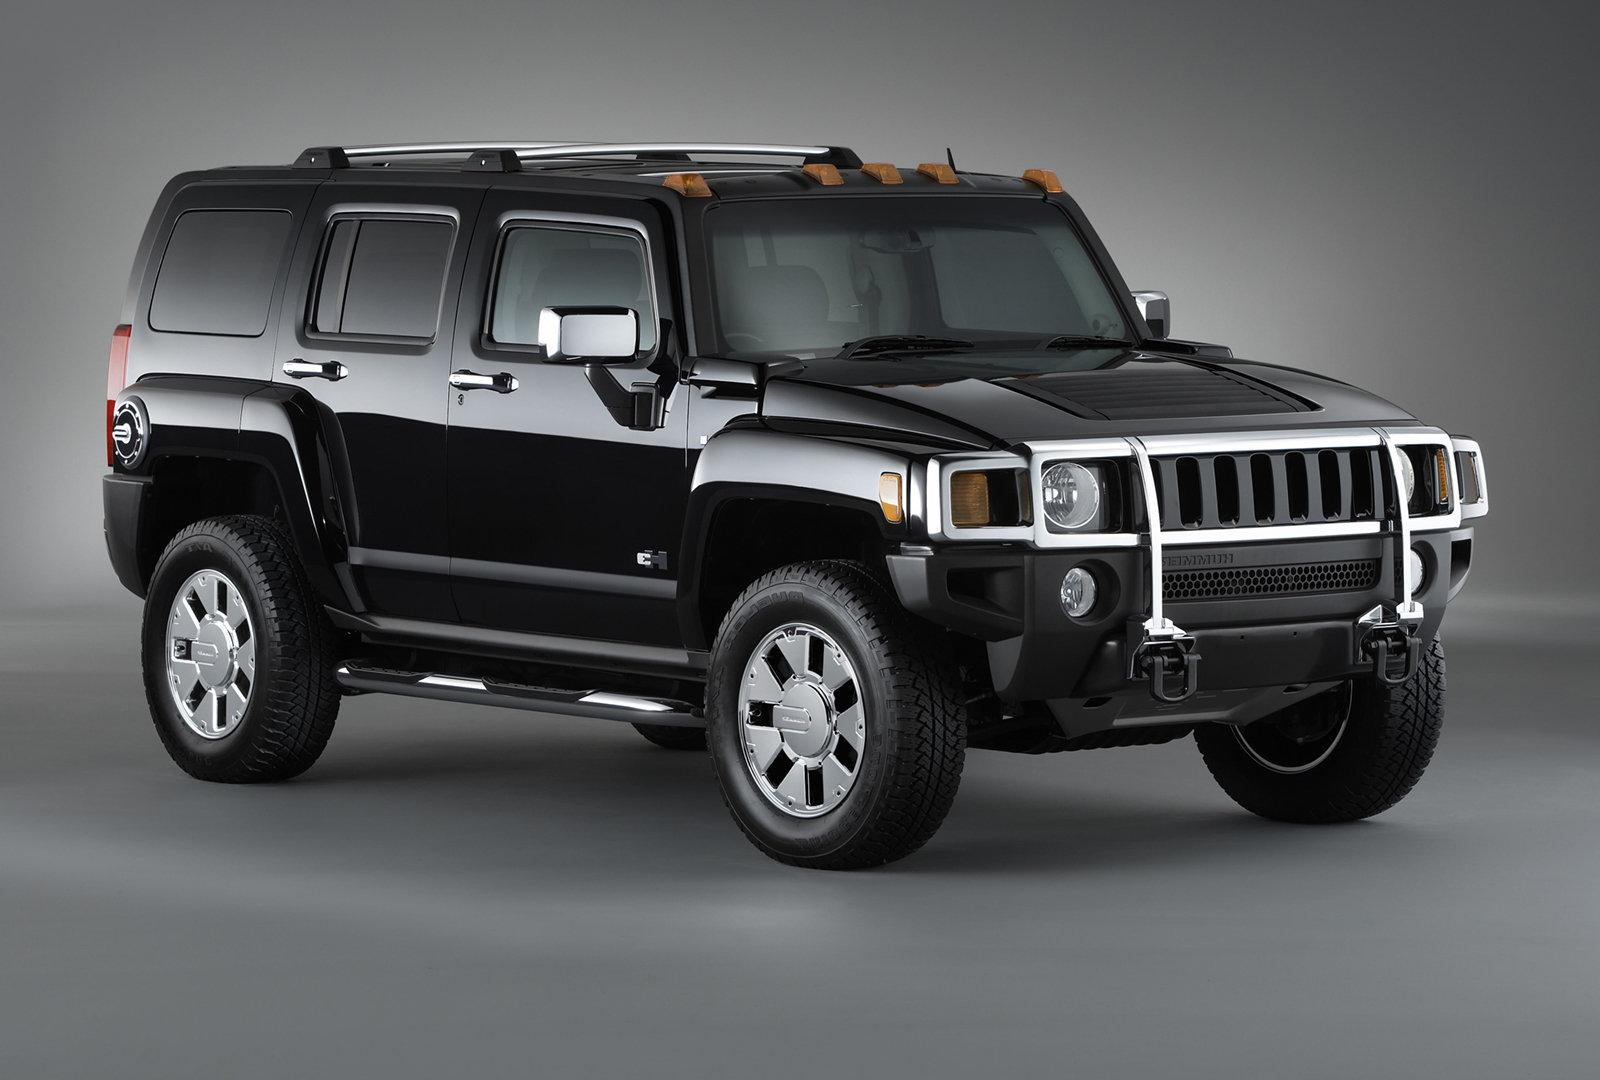 hummer Wallpaper and Background Image | 1600x1080 | ID:451659